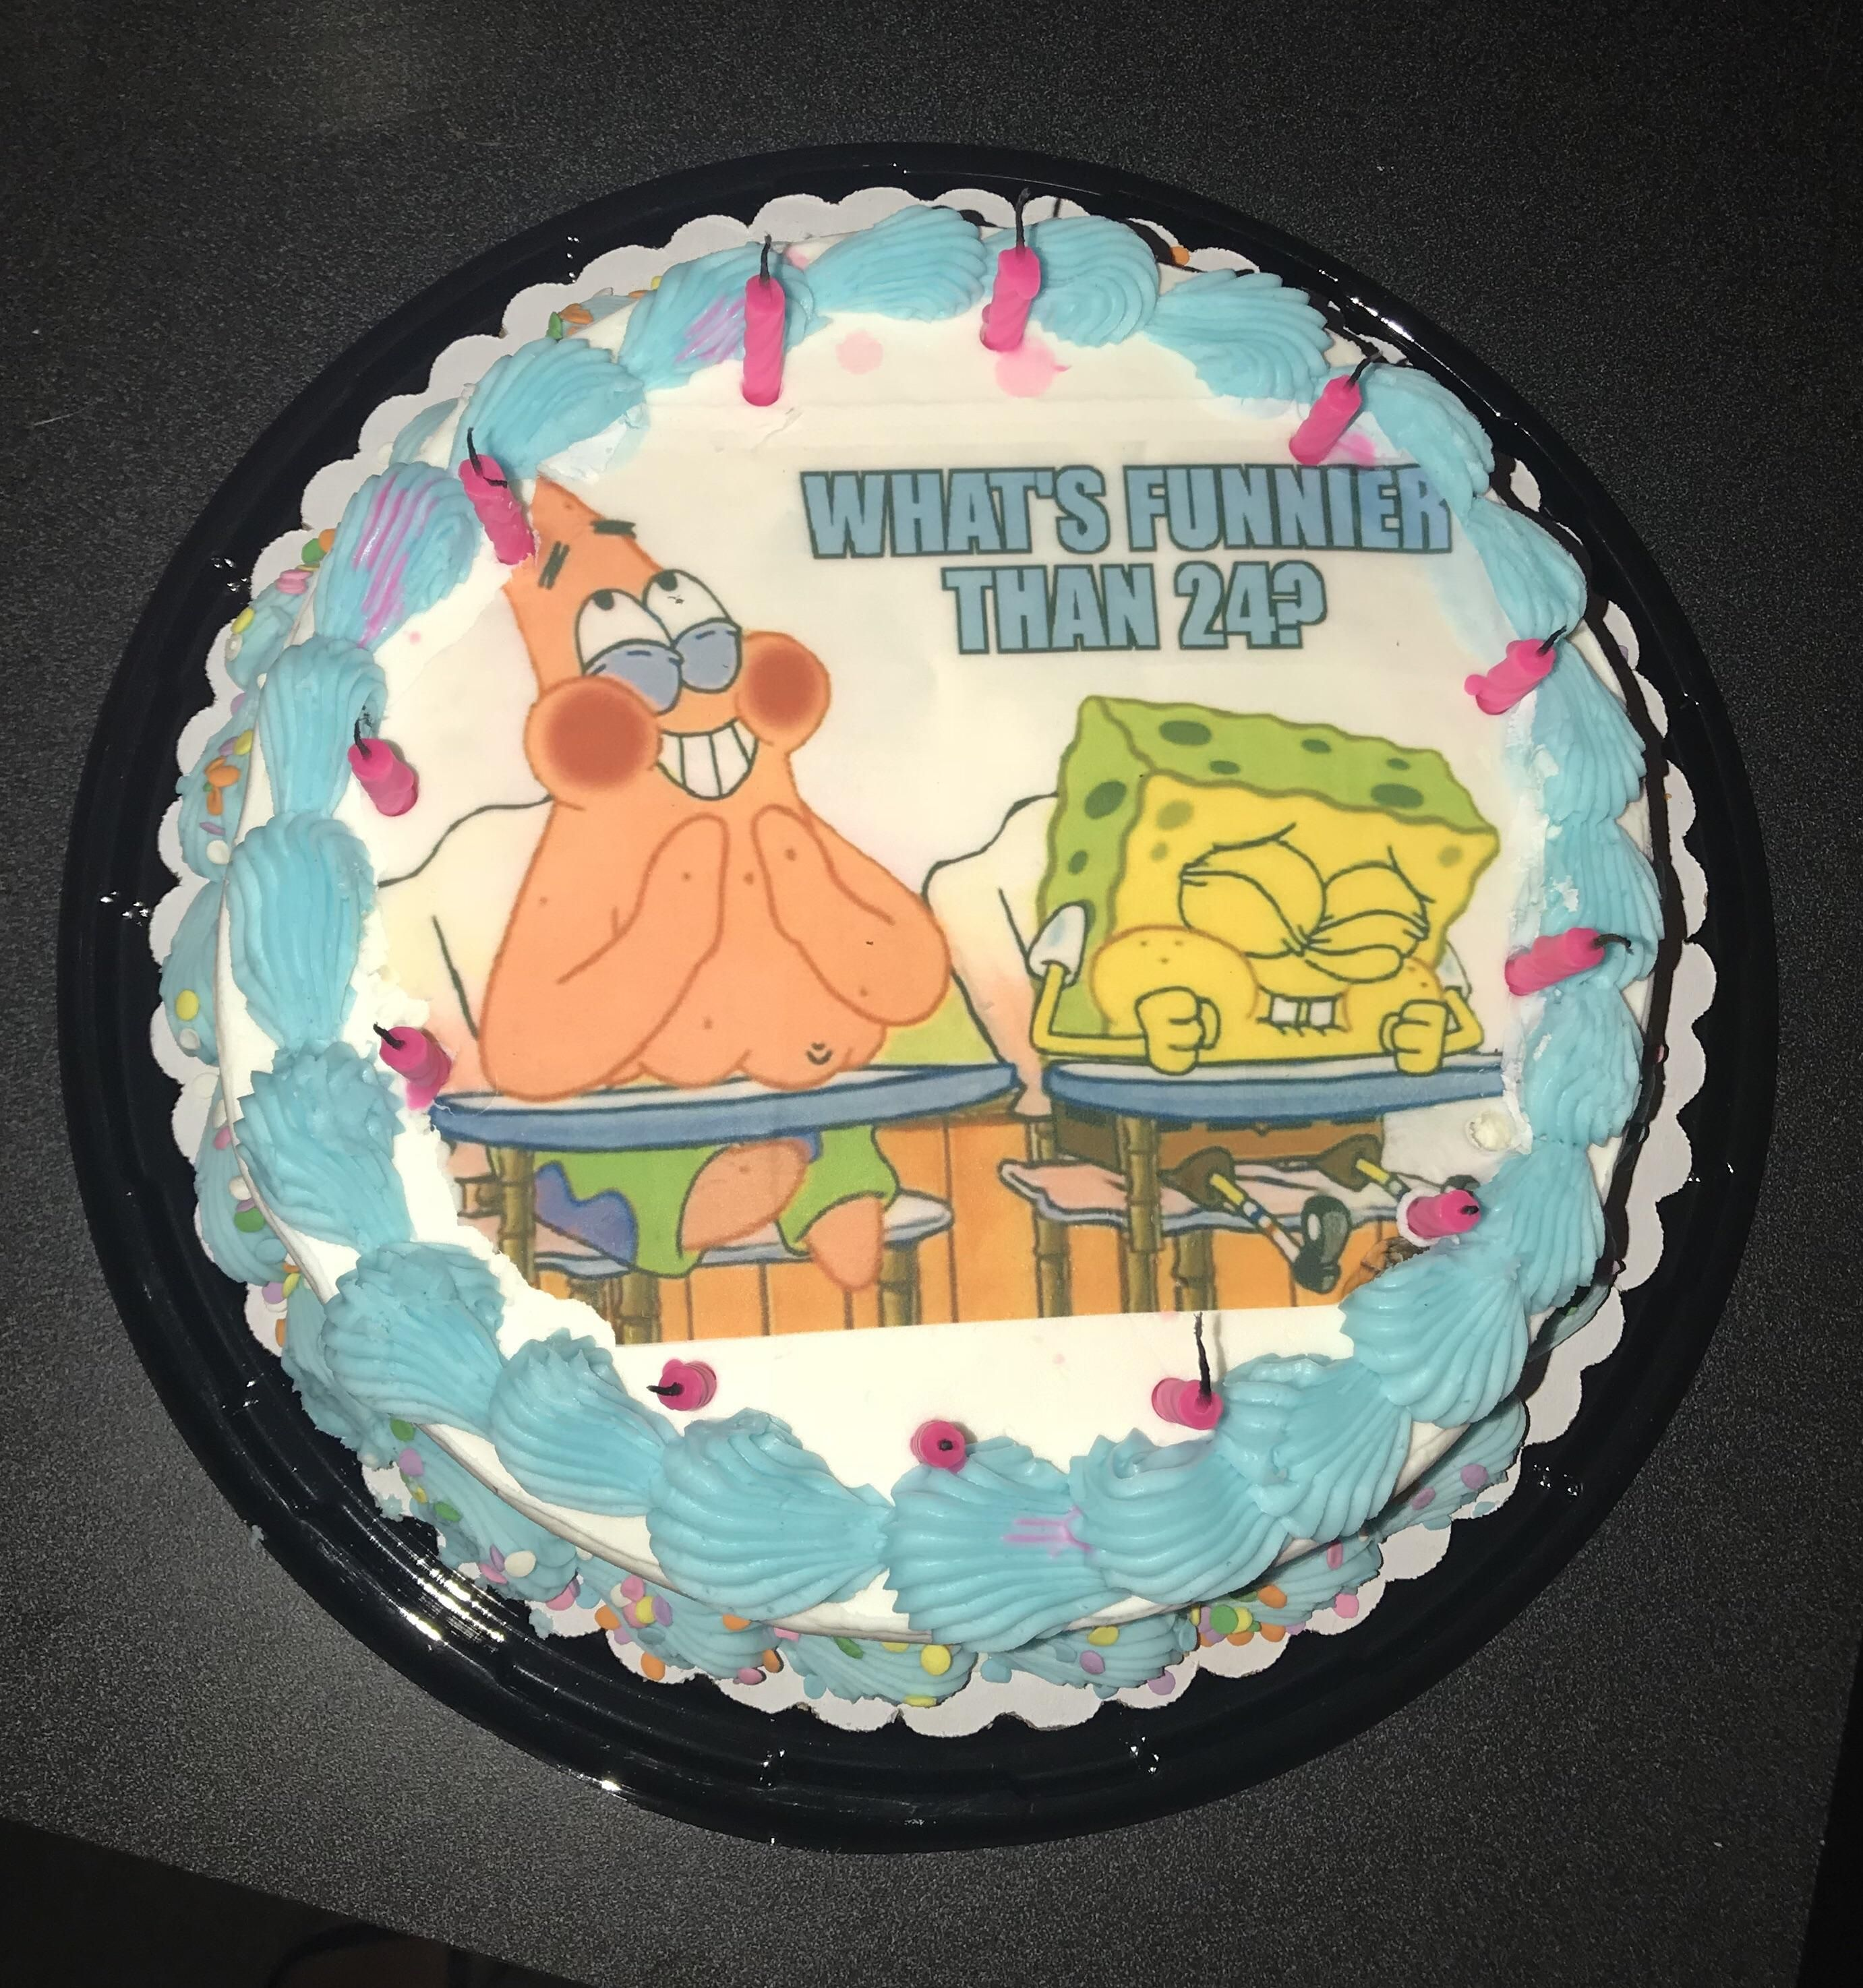 27 Amazing Image Of 25 Birthday Cake So My 25th Is This Weekend And Boyfriend Did Not